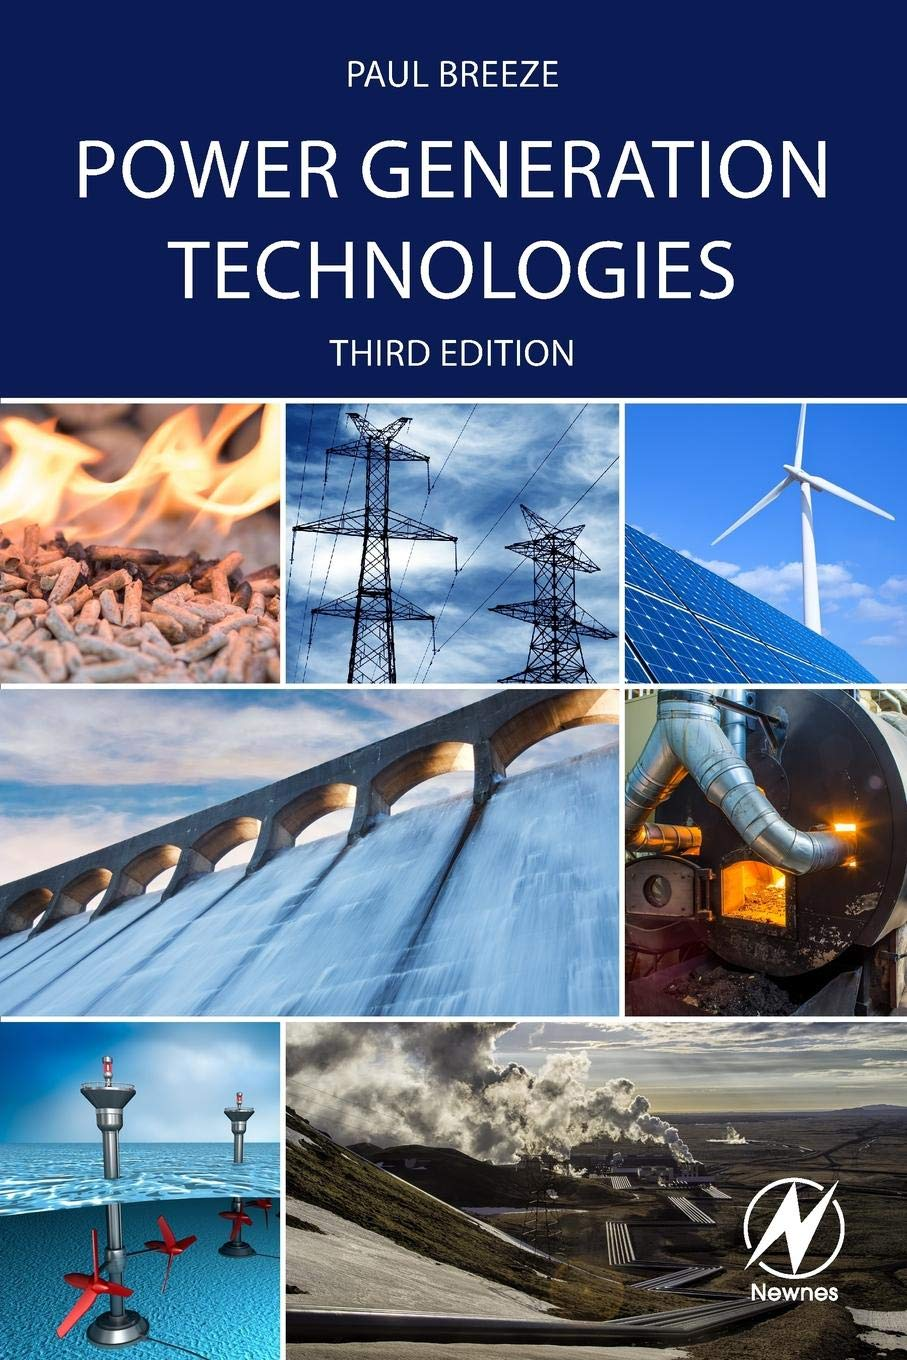 Power Generation Technologies by Newnes